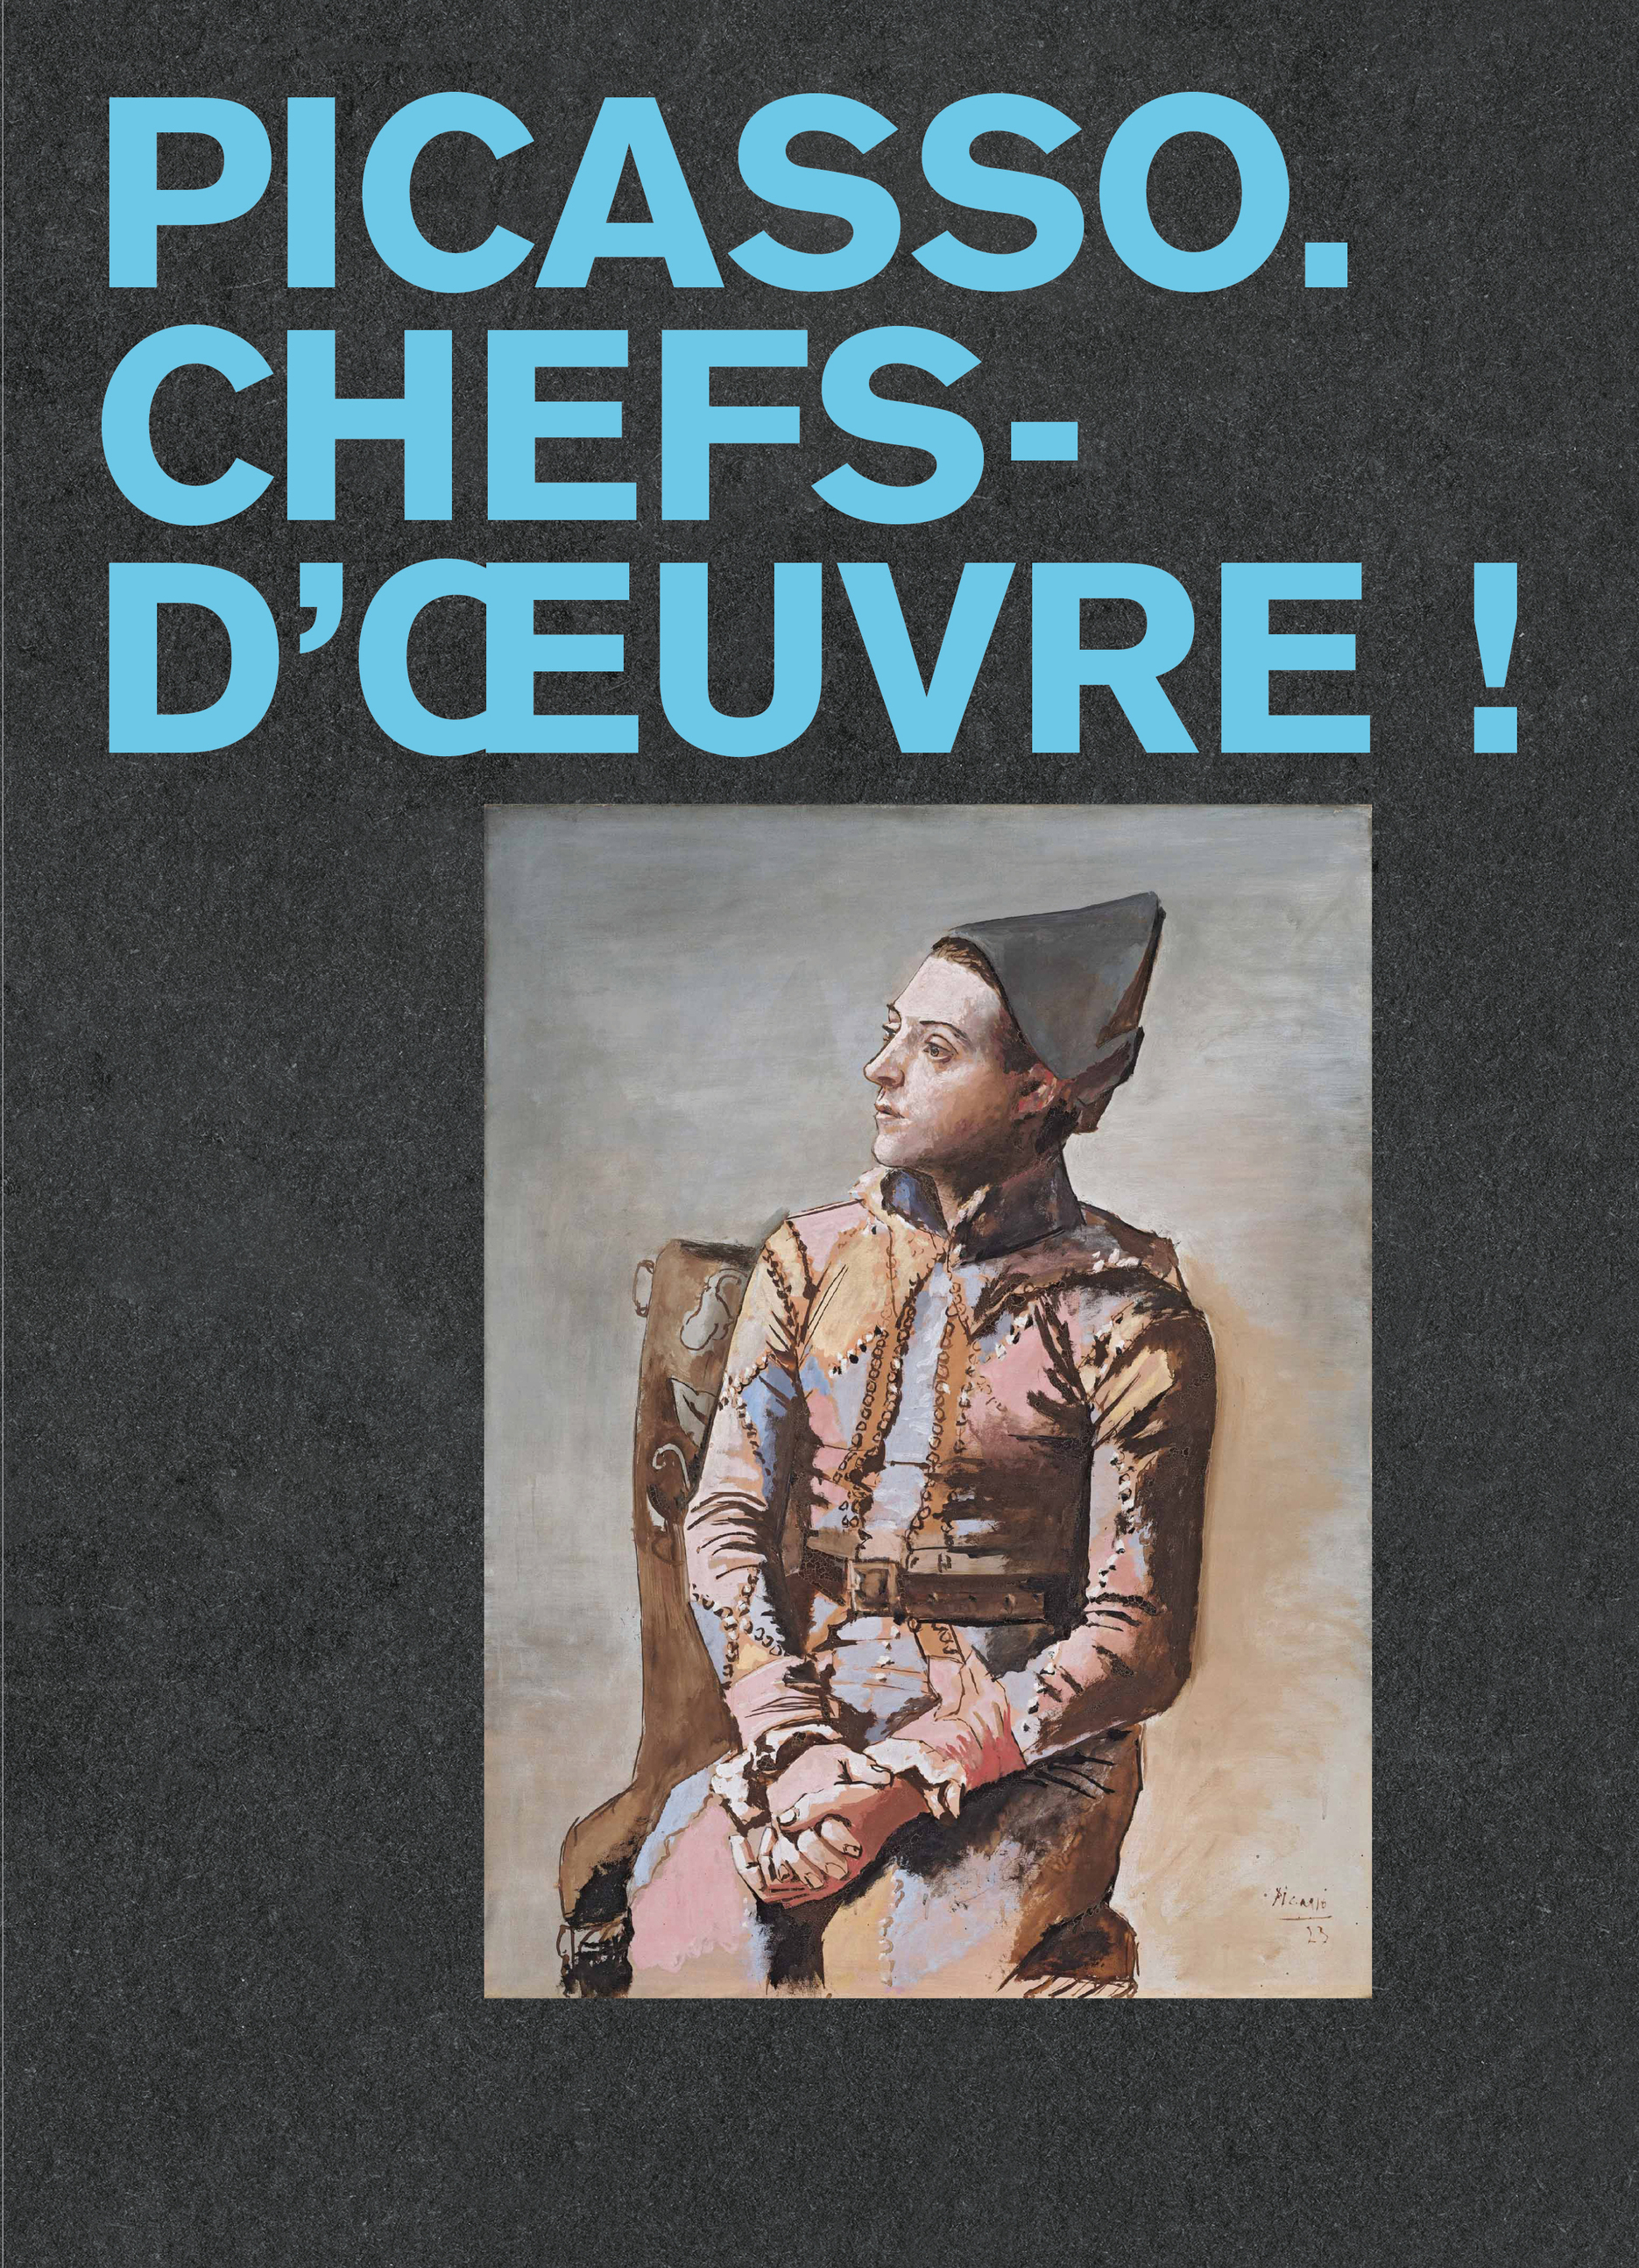 PICASSO. CHEFS-D'OEUVRE !